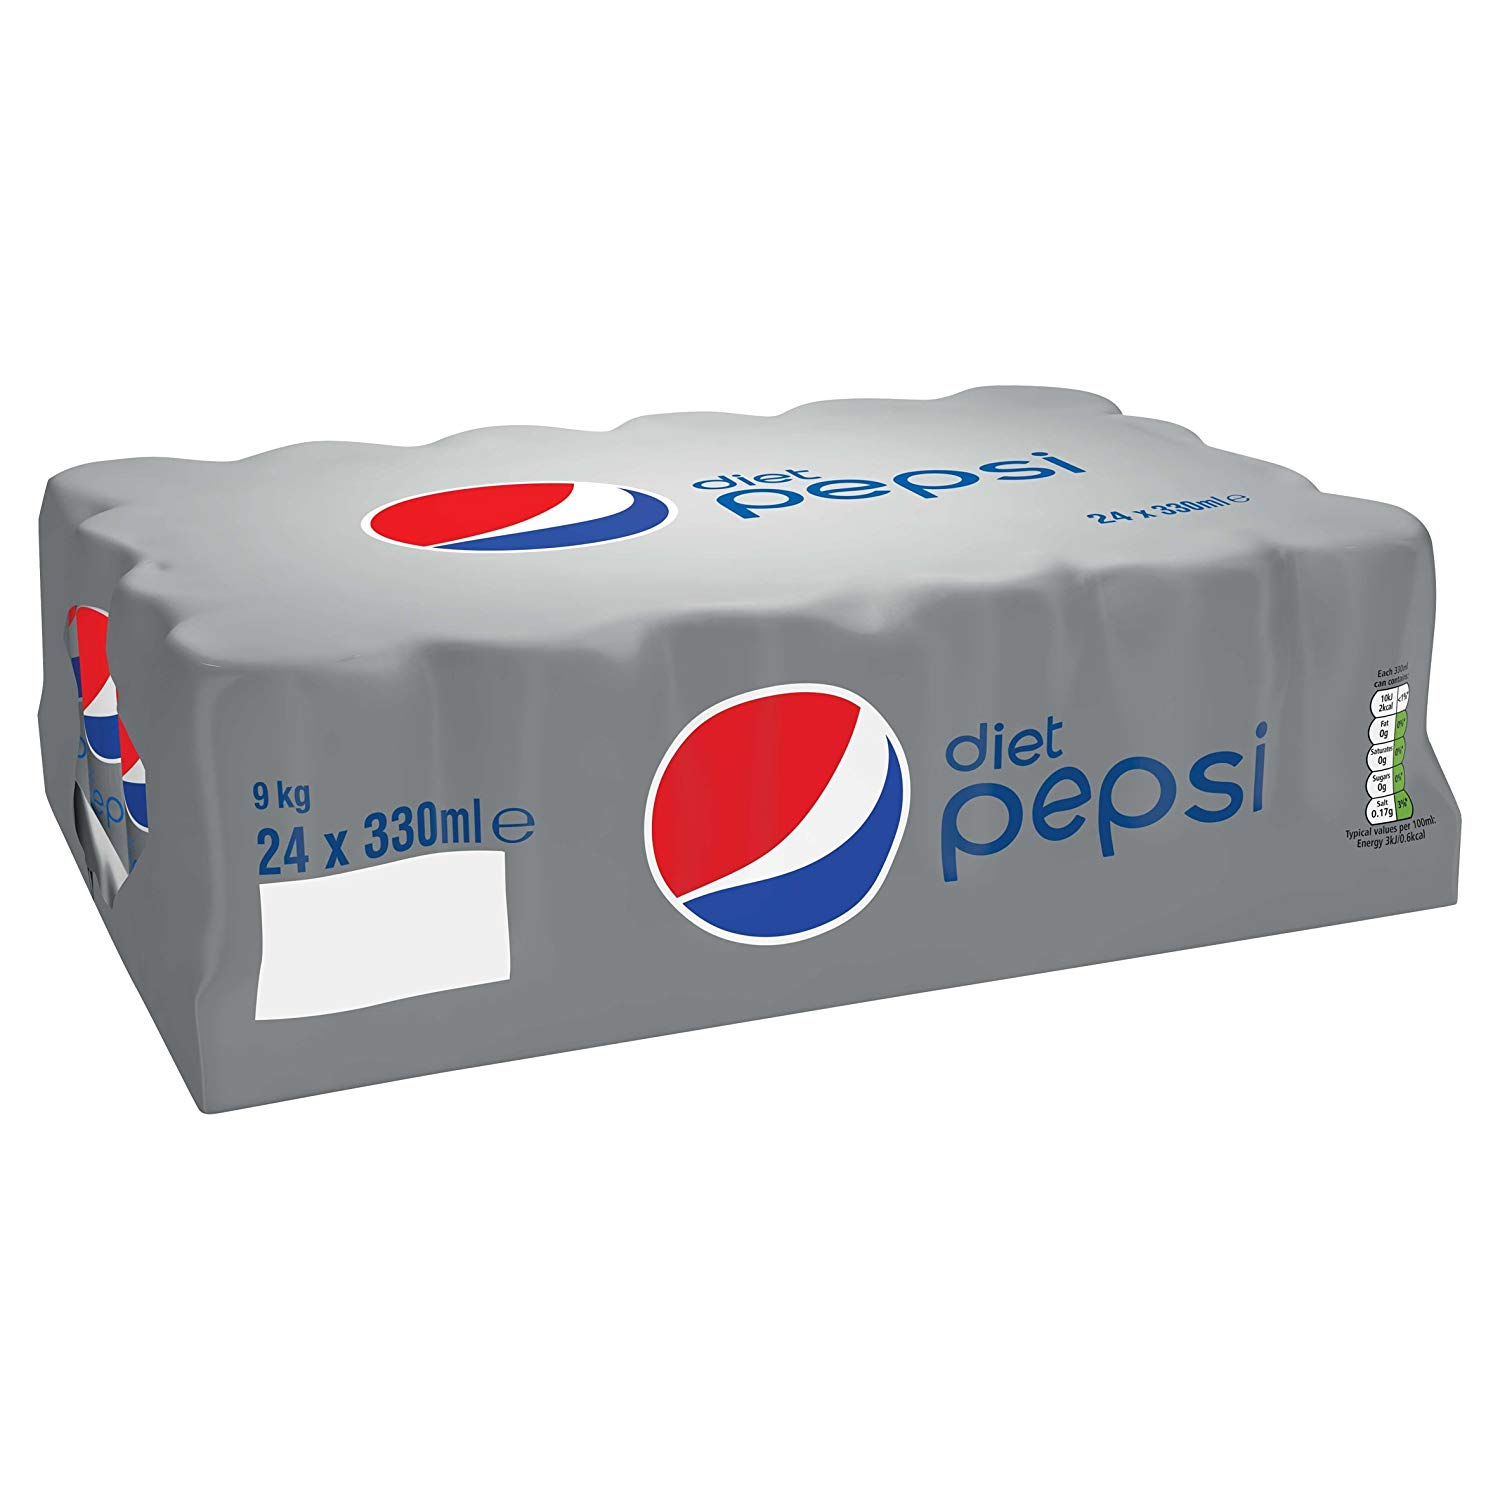 Diet Pepsi Cans, 24 x 330 ml